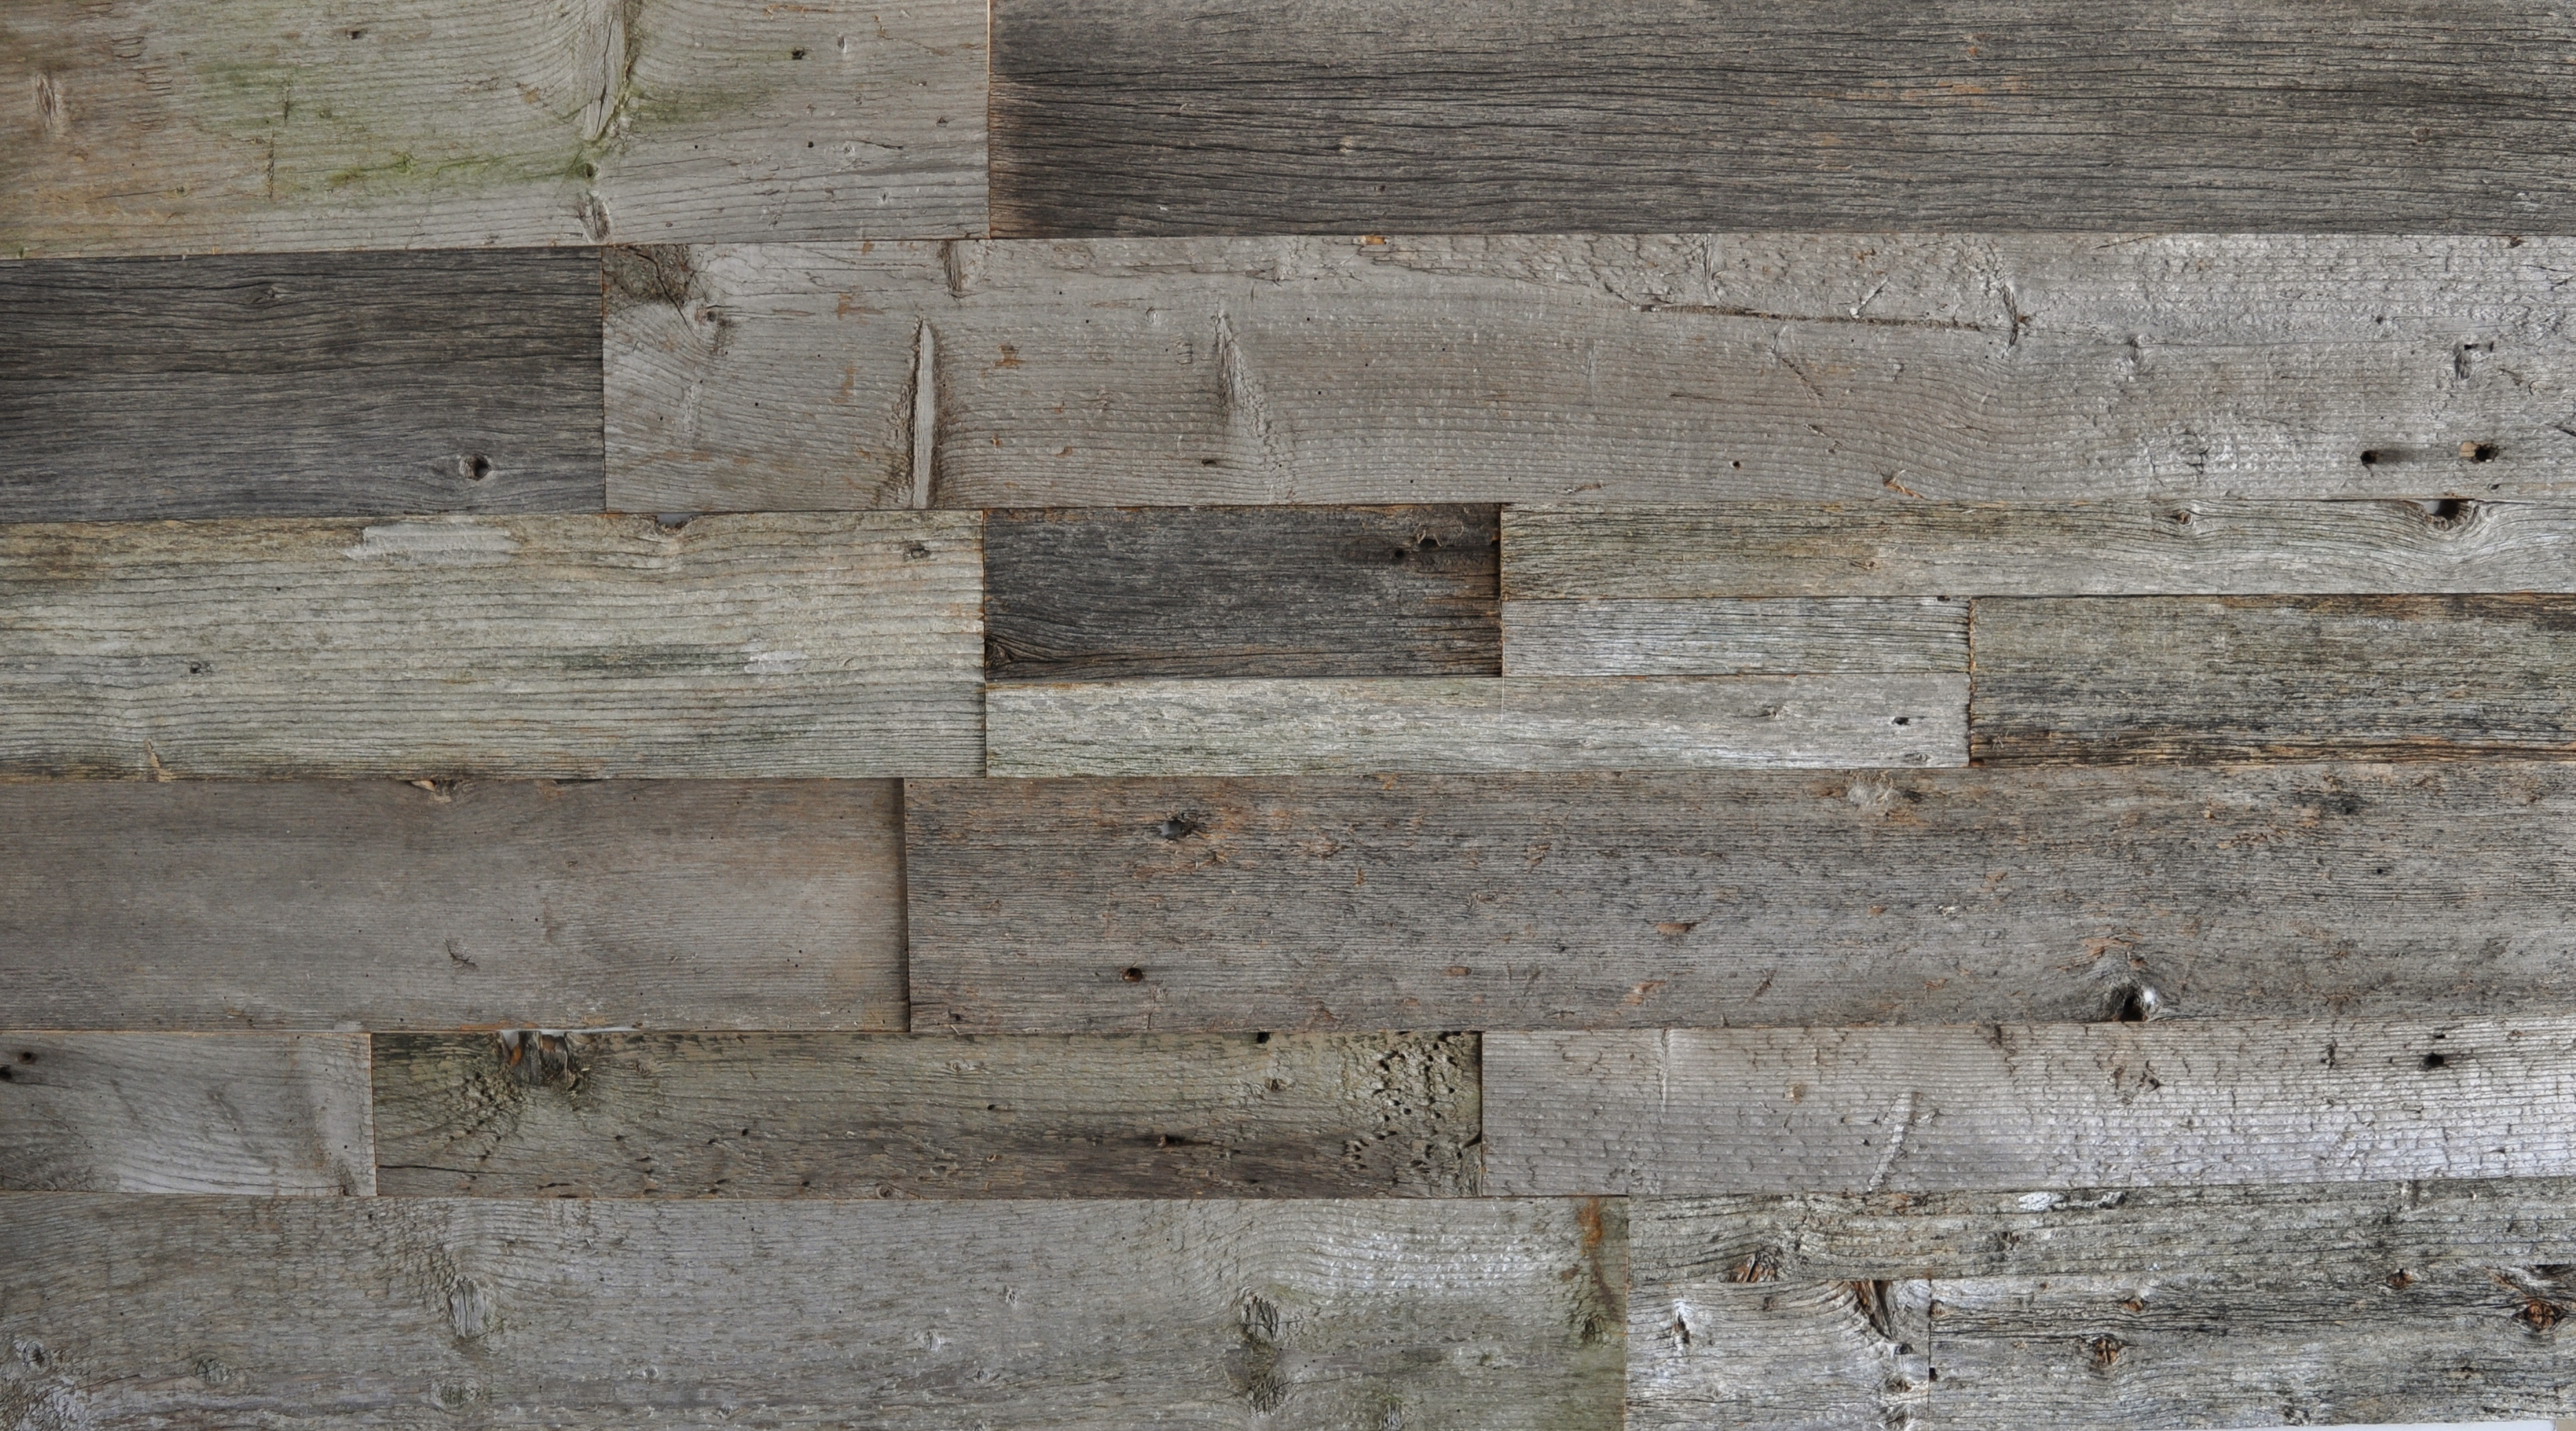 Diy Reclaimed Wood Accent Wall Grey Shades Mixed Widths Priced Per Square Foot